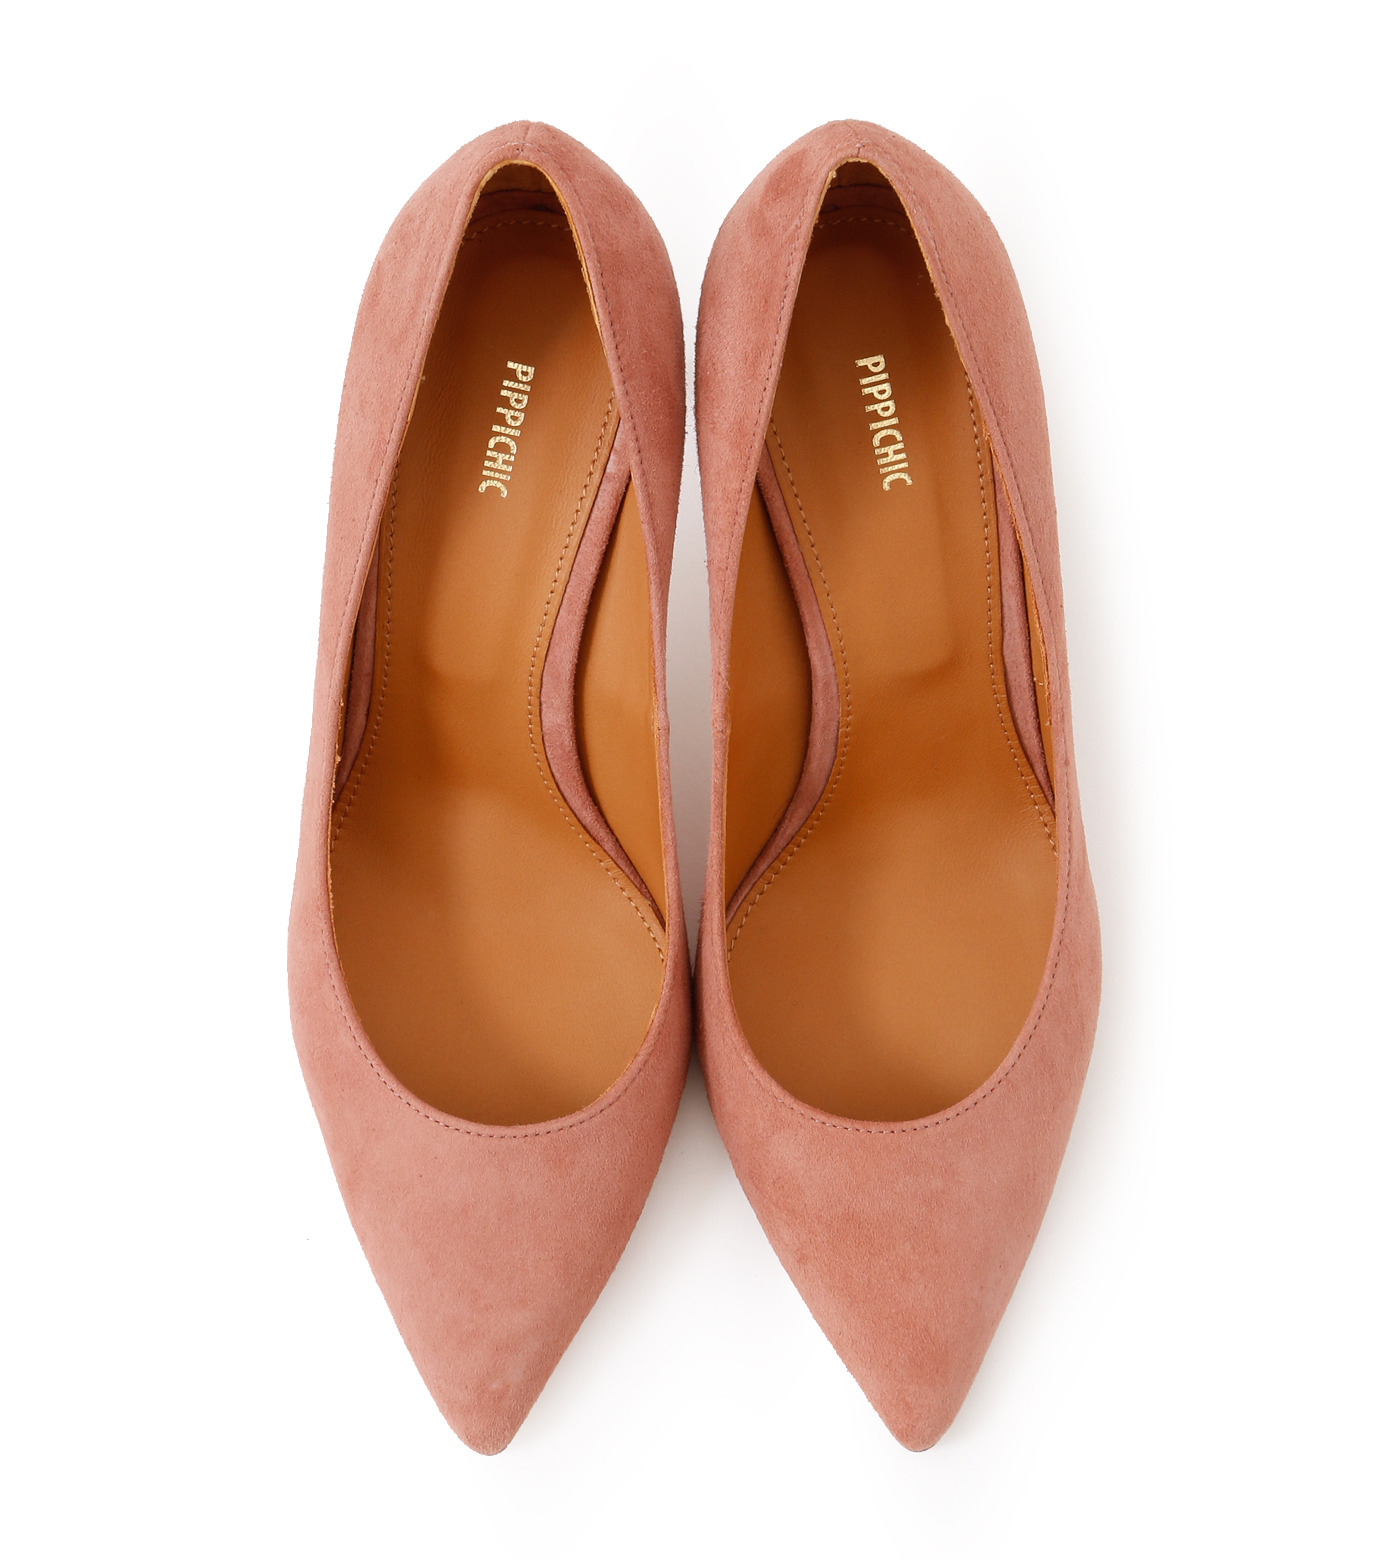 PIPPICHIC(ピッピシック)のPointed Toe 85mm Heel Pumps-LIGHT PINK(パンプス/pumps)-PP16-PPP9-L 拡大詳細画像4